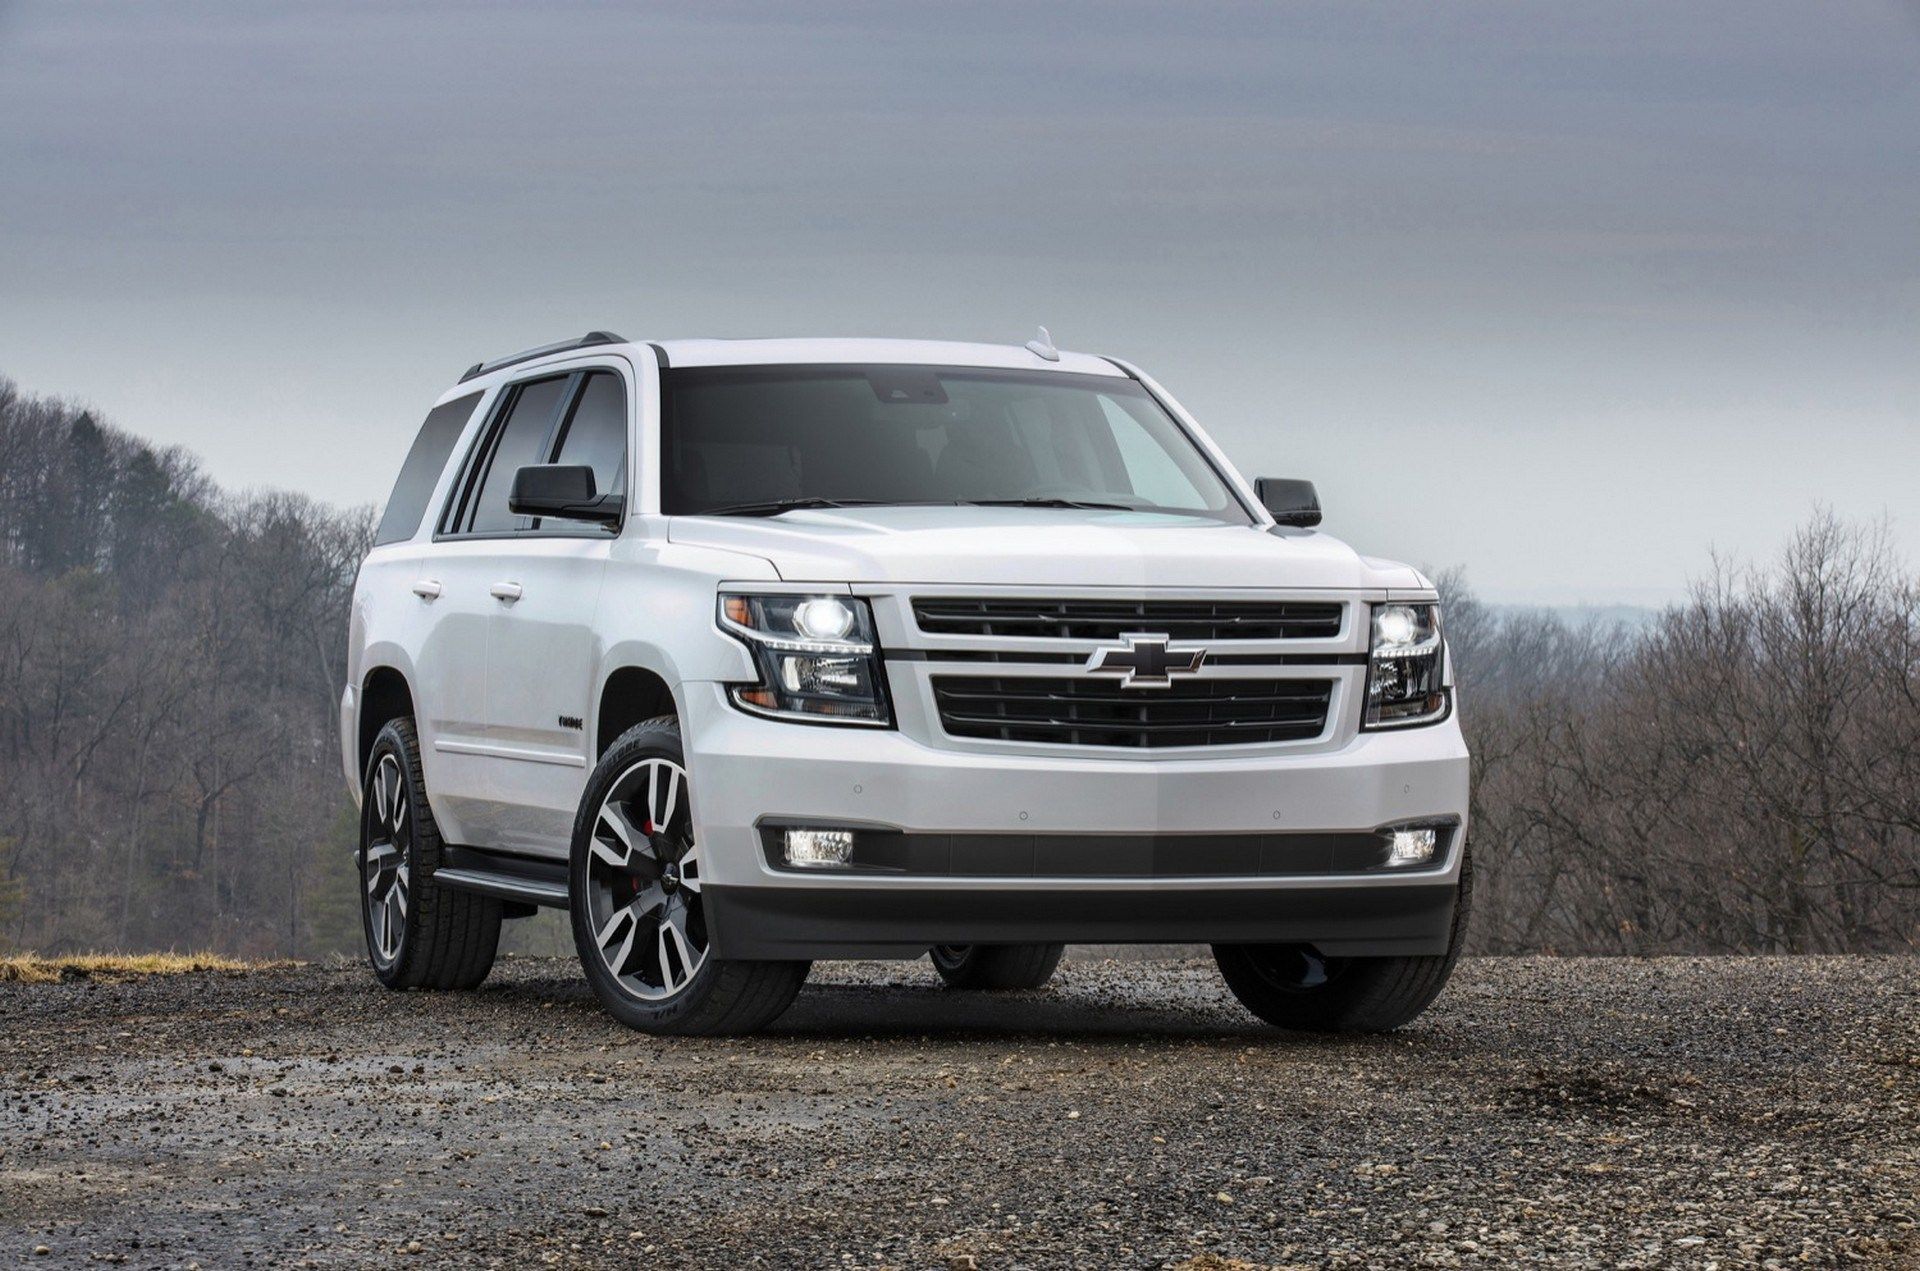 70 A 2020 Chevy Suburban Z71 Release Date and Concept